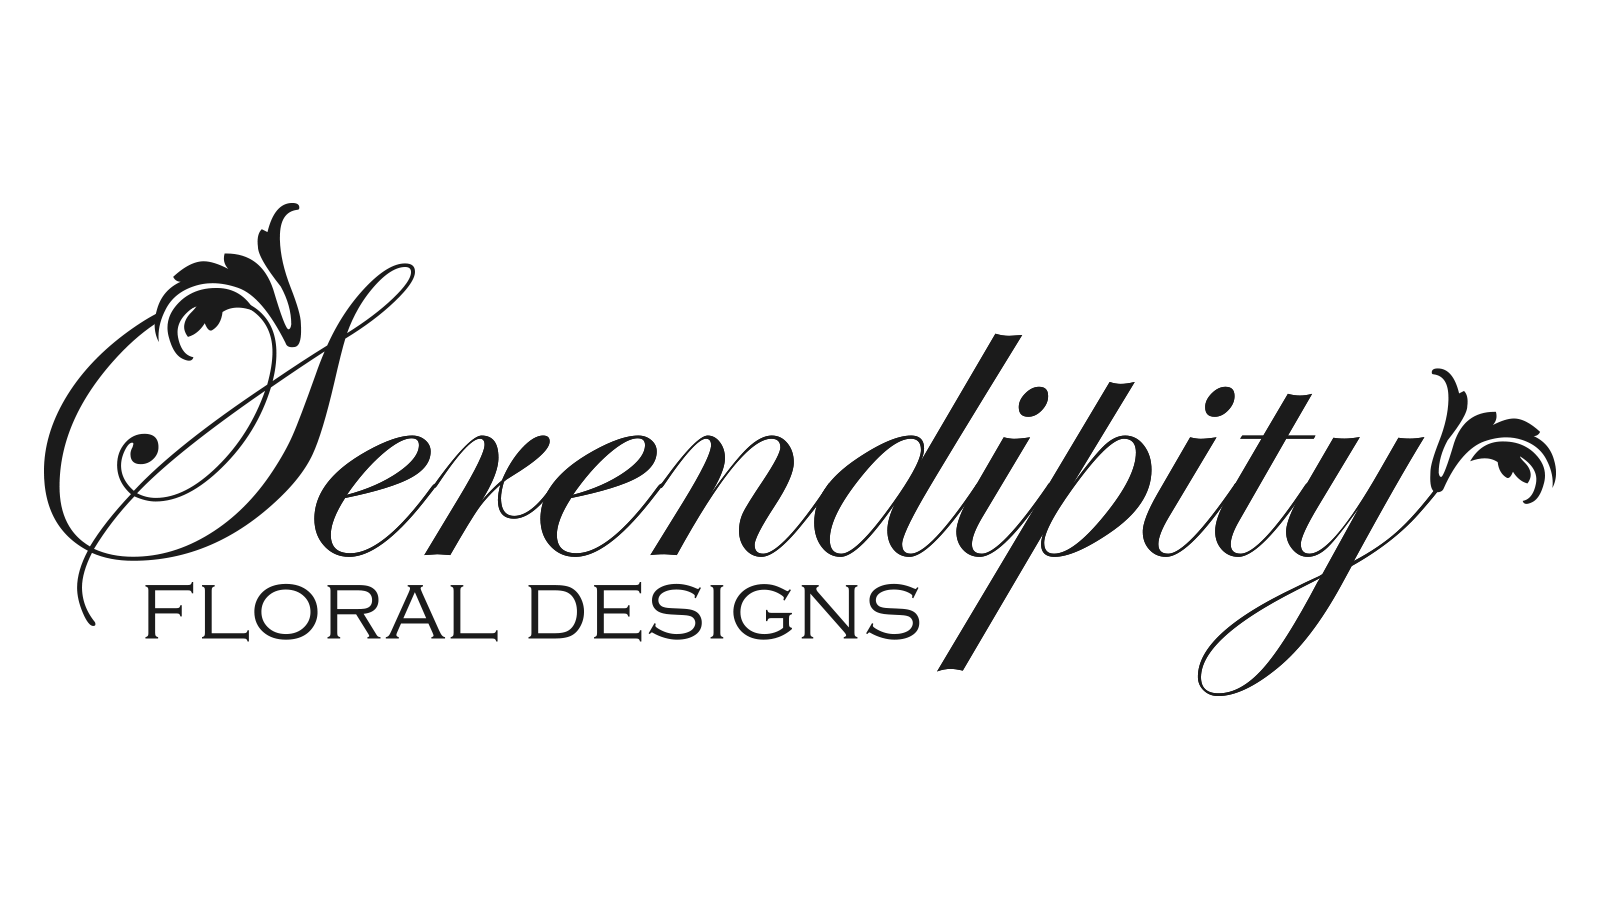 Serendipity Floral Designs